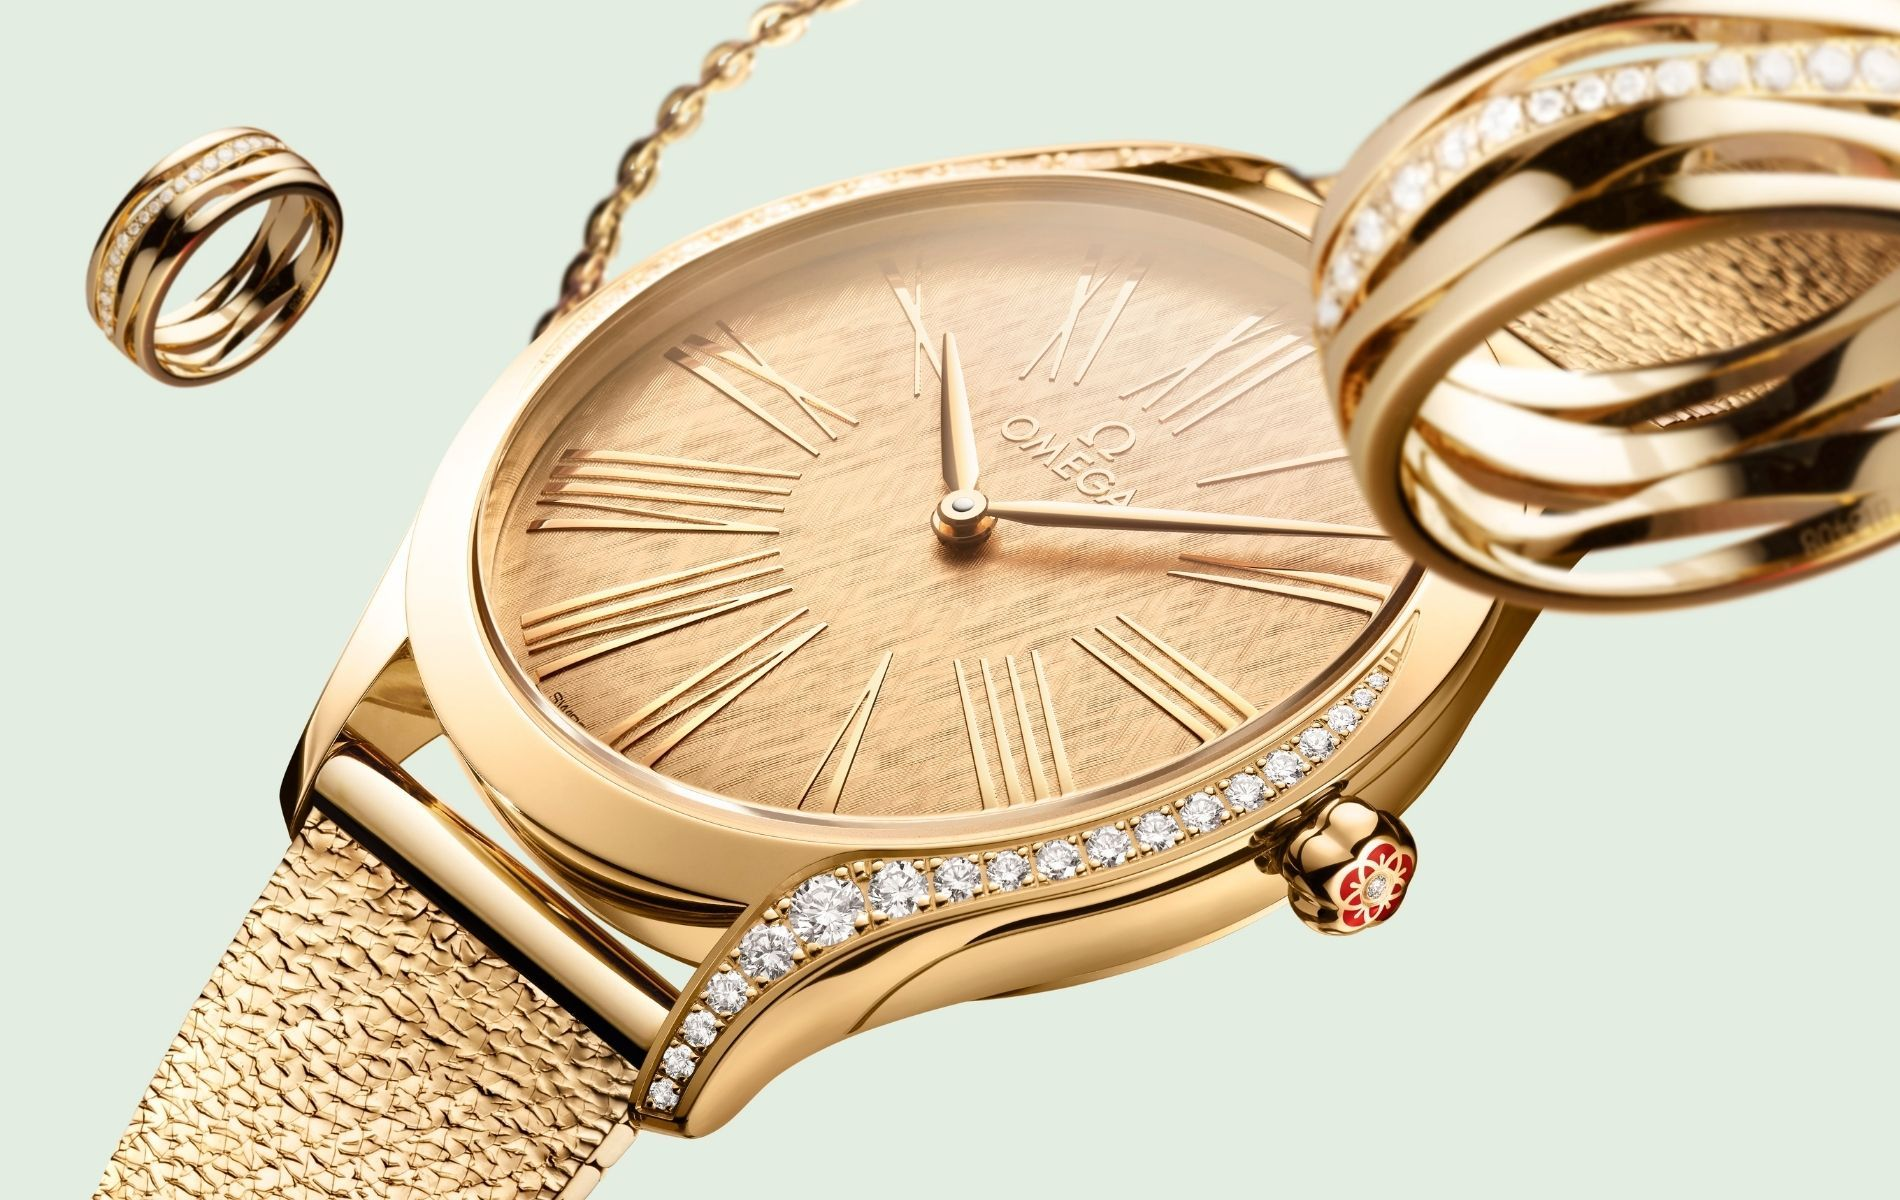 The New Omega Tresor Watch Exudes Understated Glamour